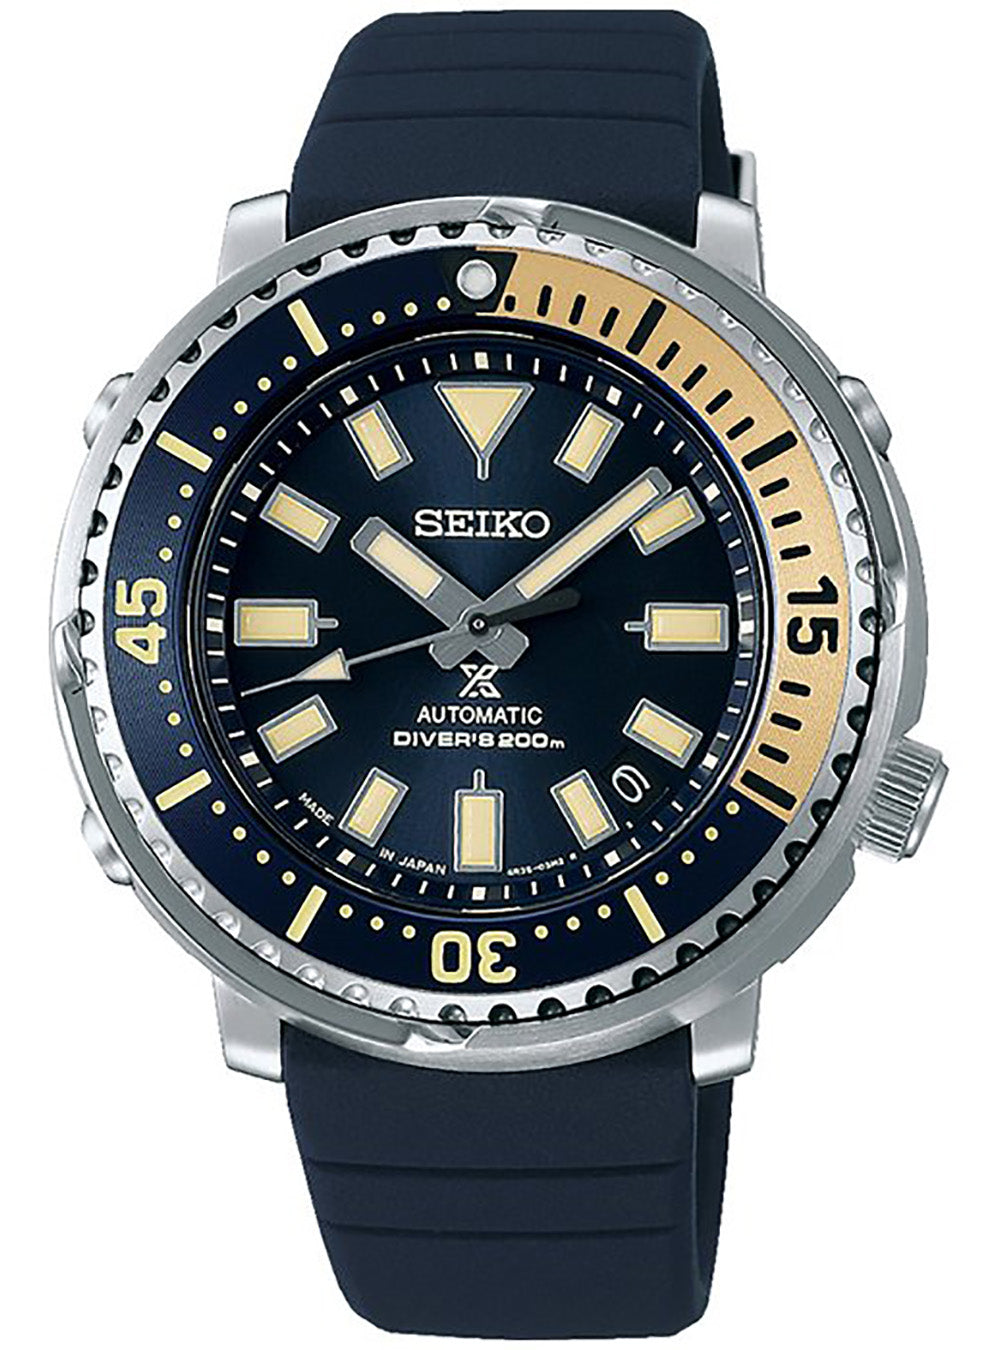 SEIKO PROSPEX DIVER SCUBA STREET SAFARI SBDY073 MENS LIMITED EDITION MADE IN JAPAN JDM